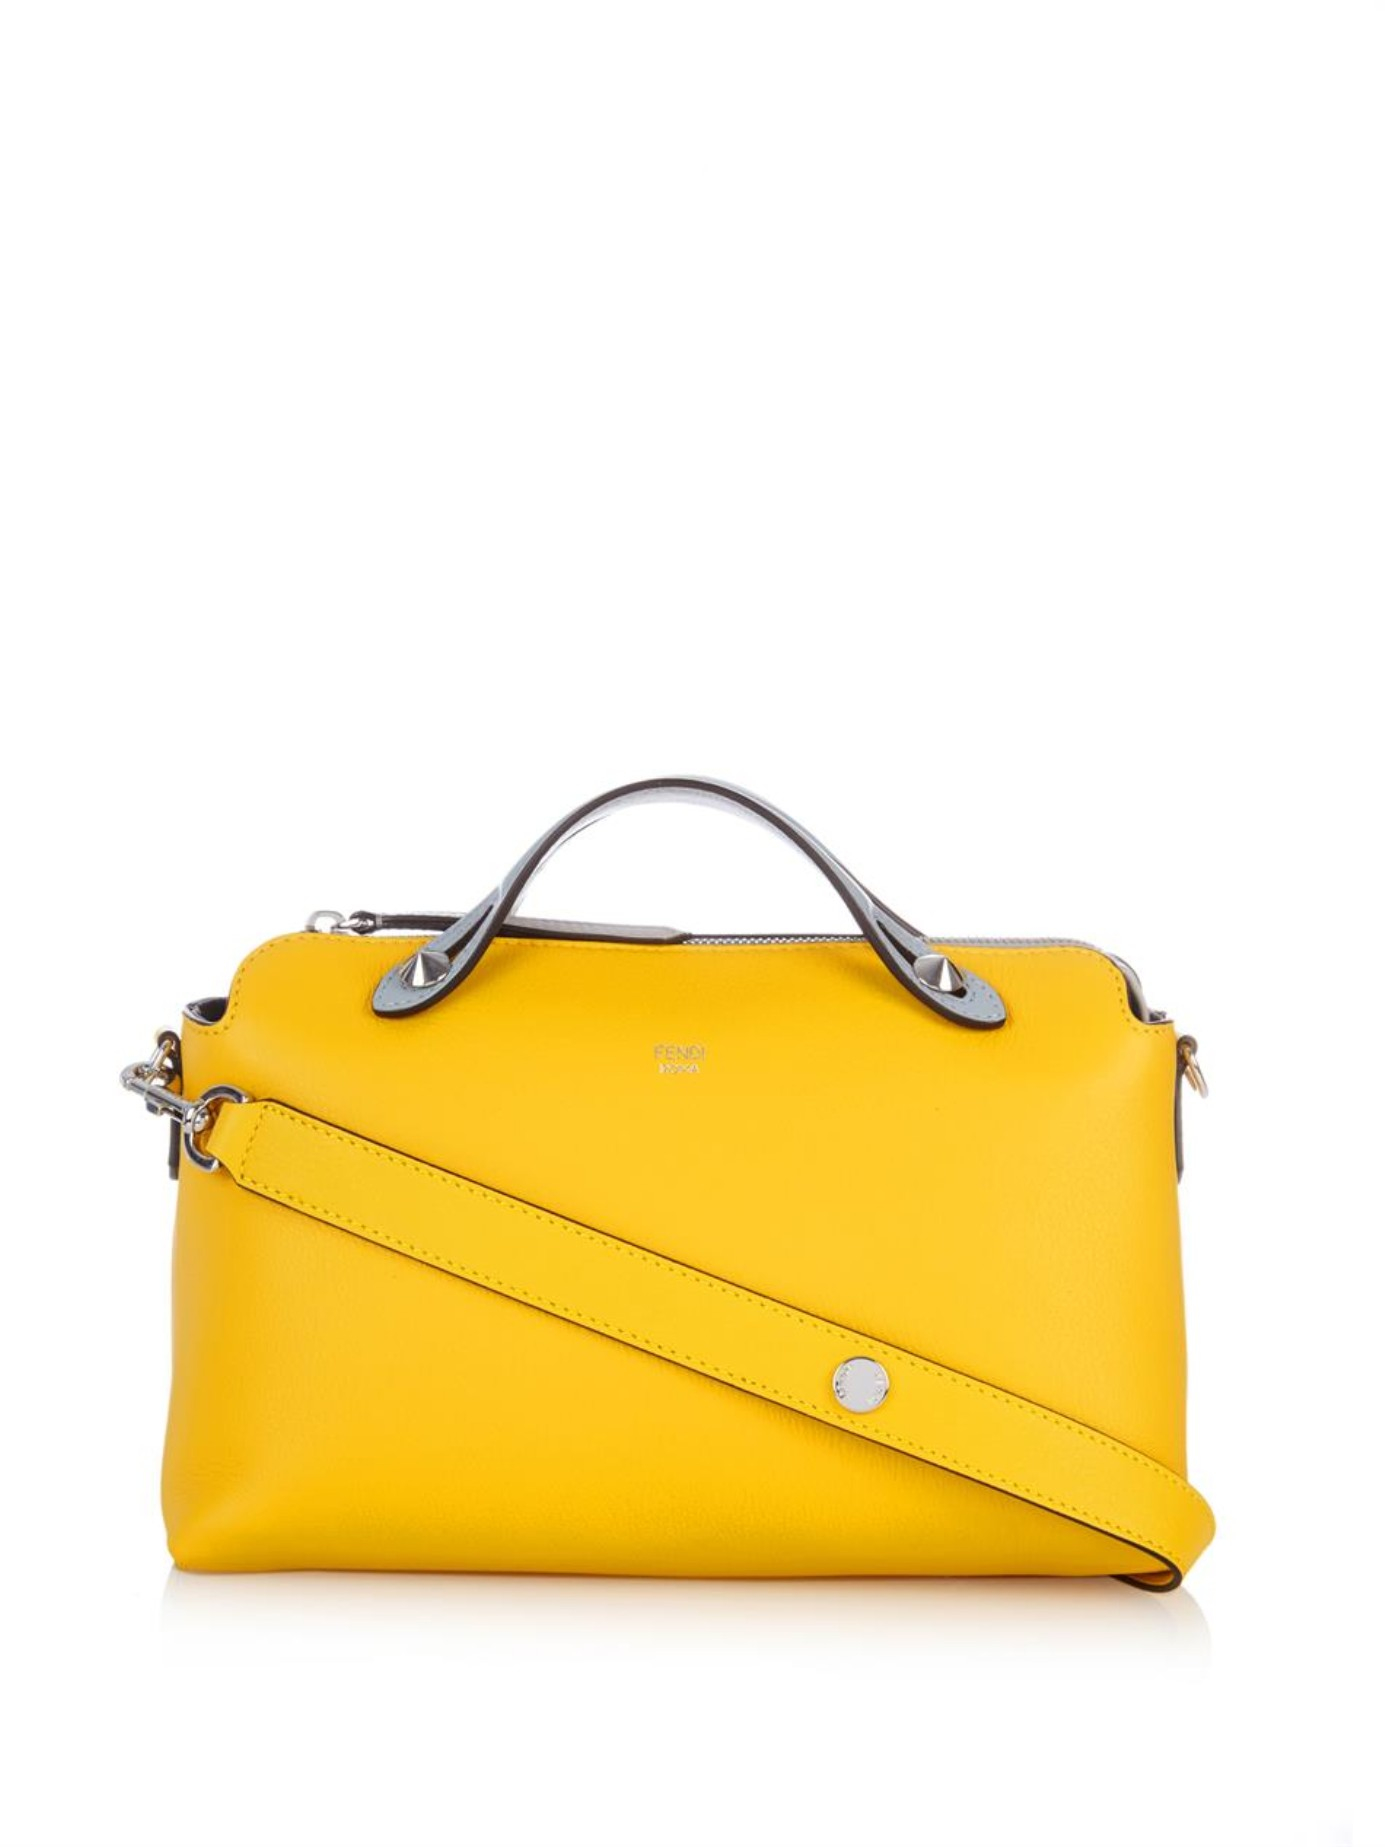 7d5f62bd8842 ... wholesale lyst fendi by the way leather cross body bag in yellow ef105  96736